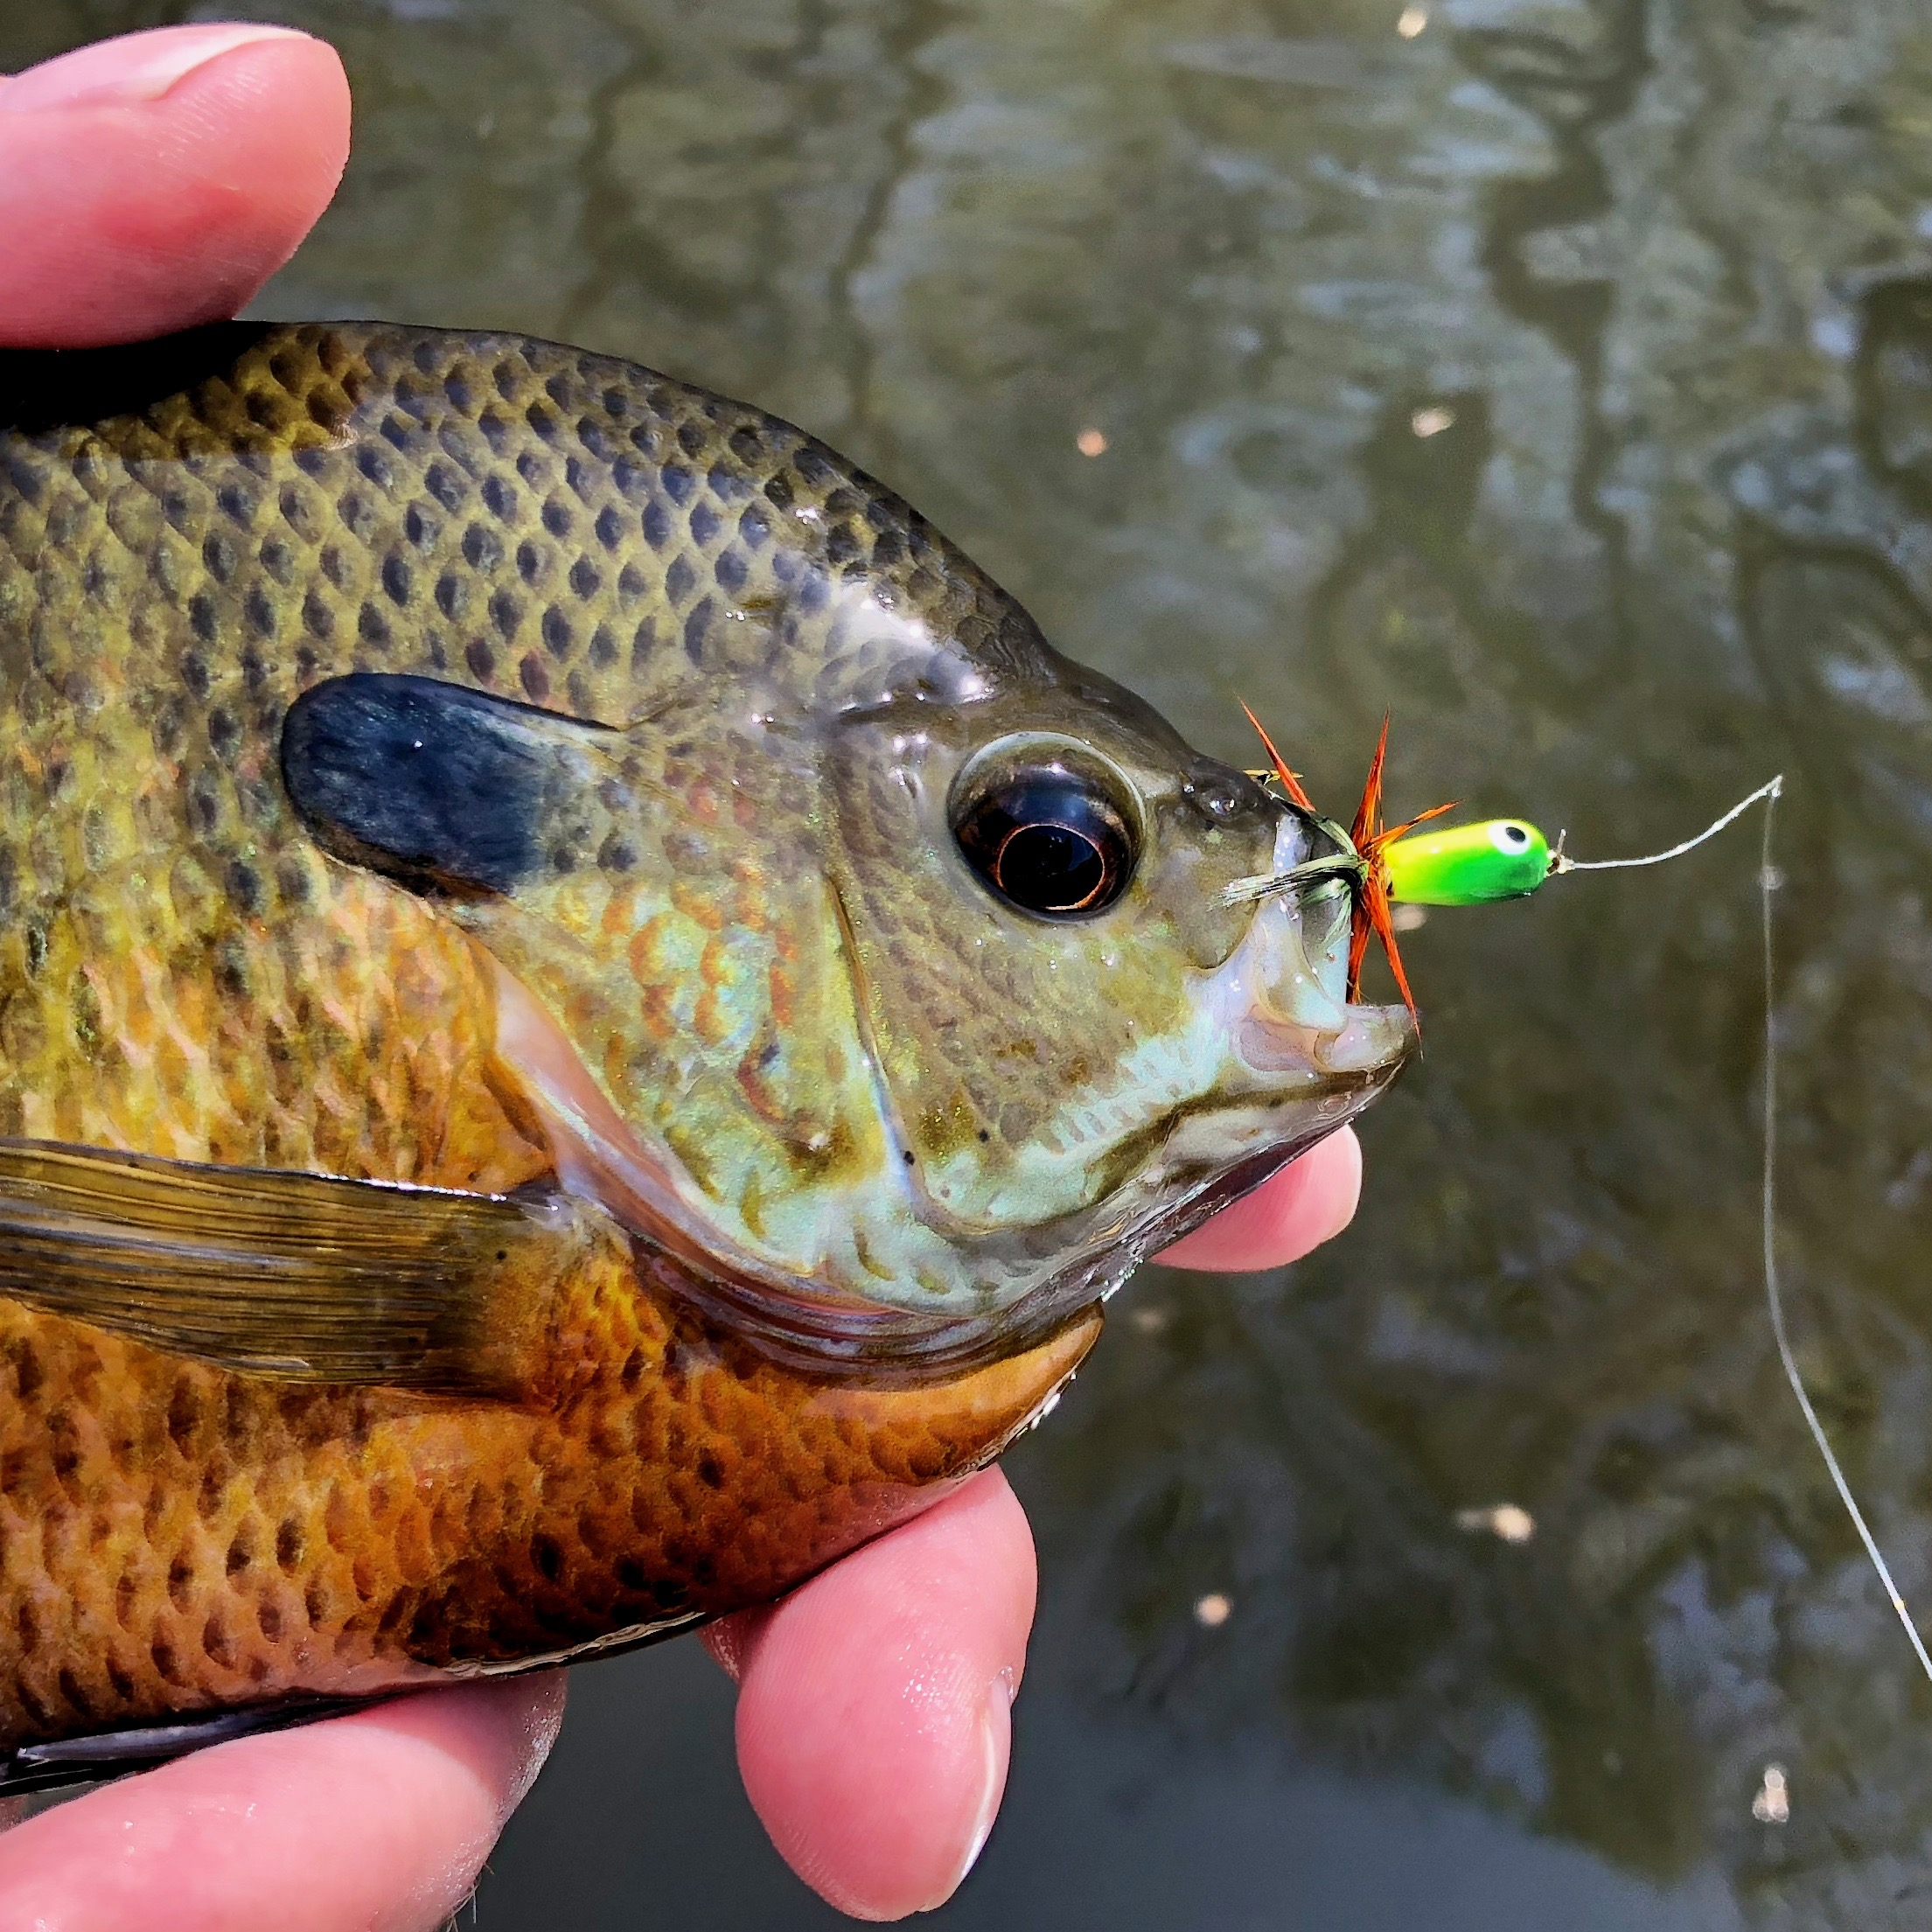 The Gum Drop Slider is irresistible to bluegills and other panfish!